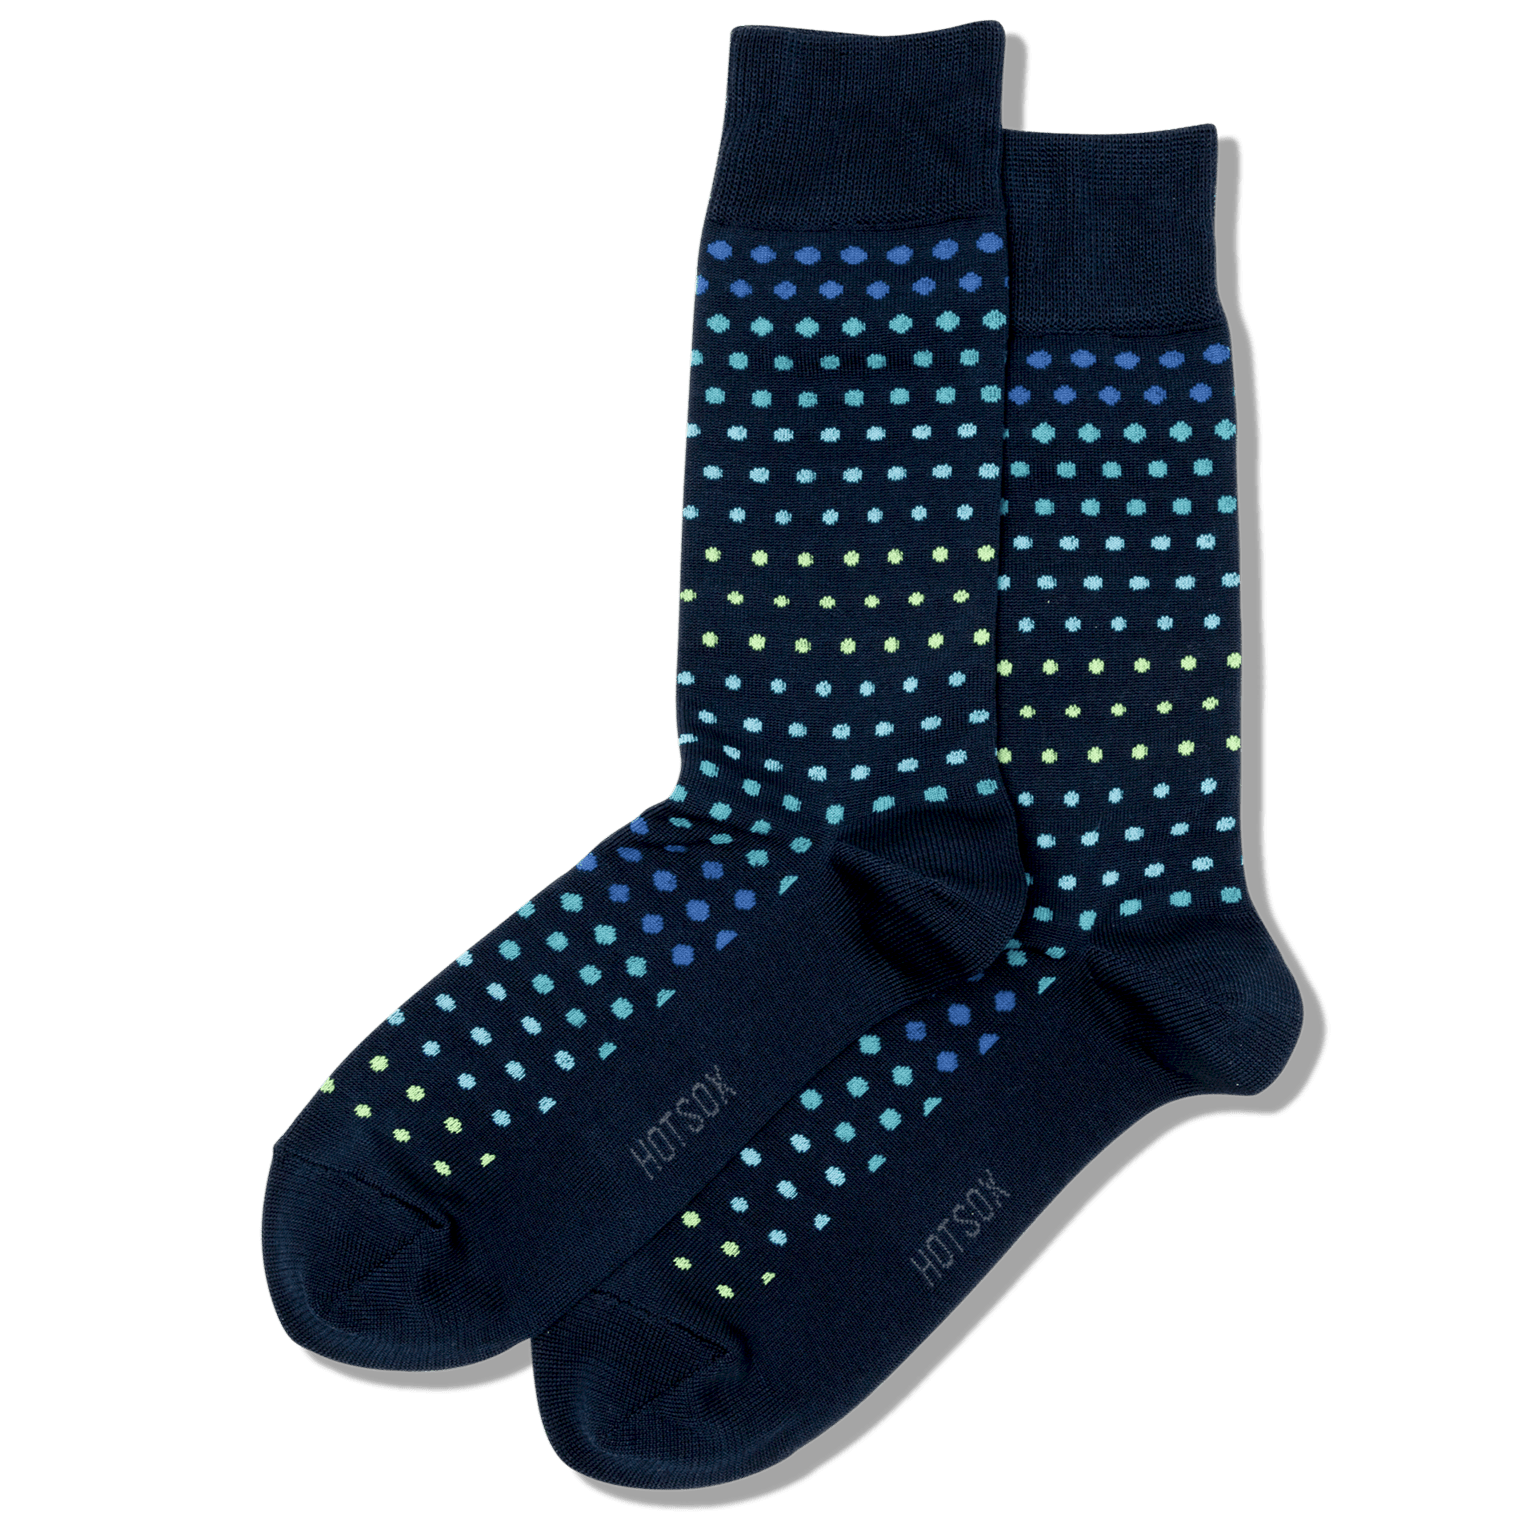 Variegated Dot Slack Socks Men's Crew Sock Navy